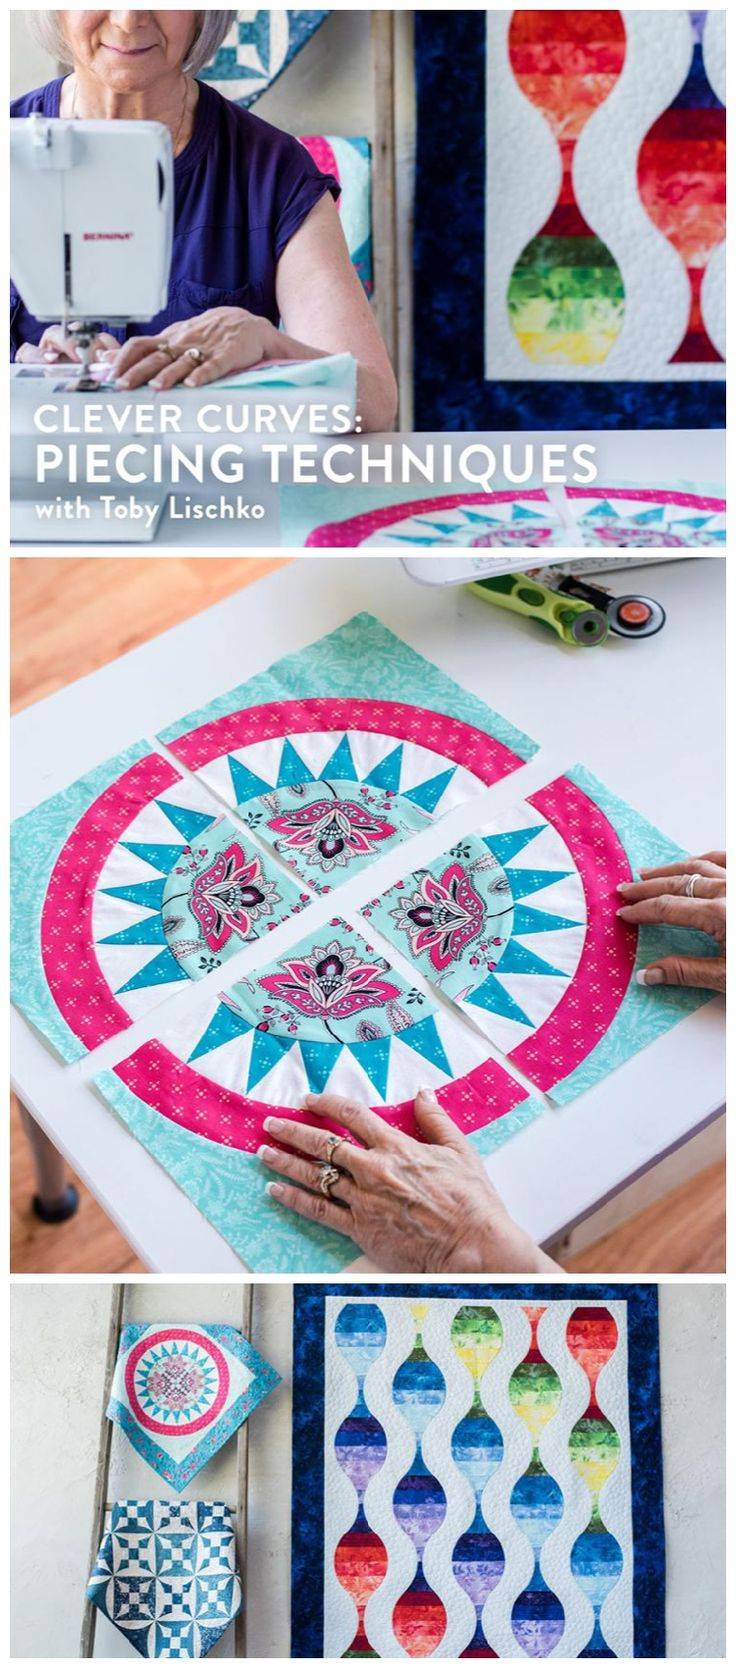 Clever Curves:  Piecing Techniques.  Learn how to piece curves for   quilting.  Quilting curves.  techniques to help you create pucker-free   curves, first using a simple pinning technique and then with paperless   foundation piecing, all   building up to the New York Beauty block.  Affiliate link.